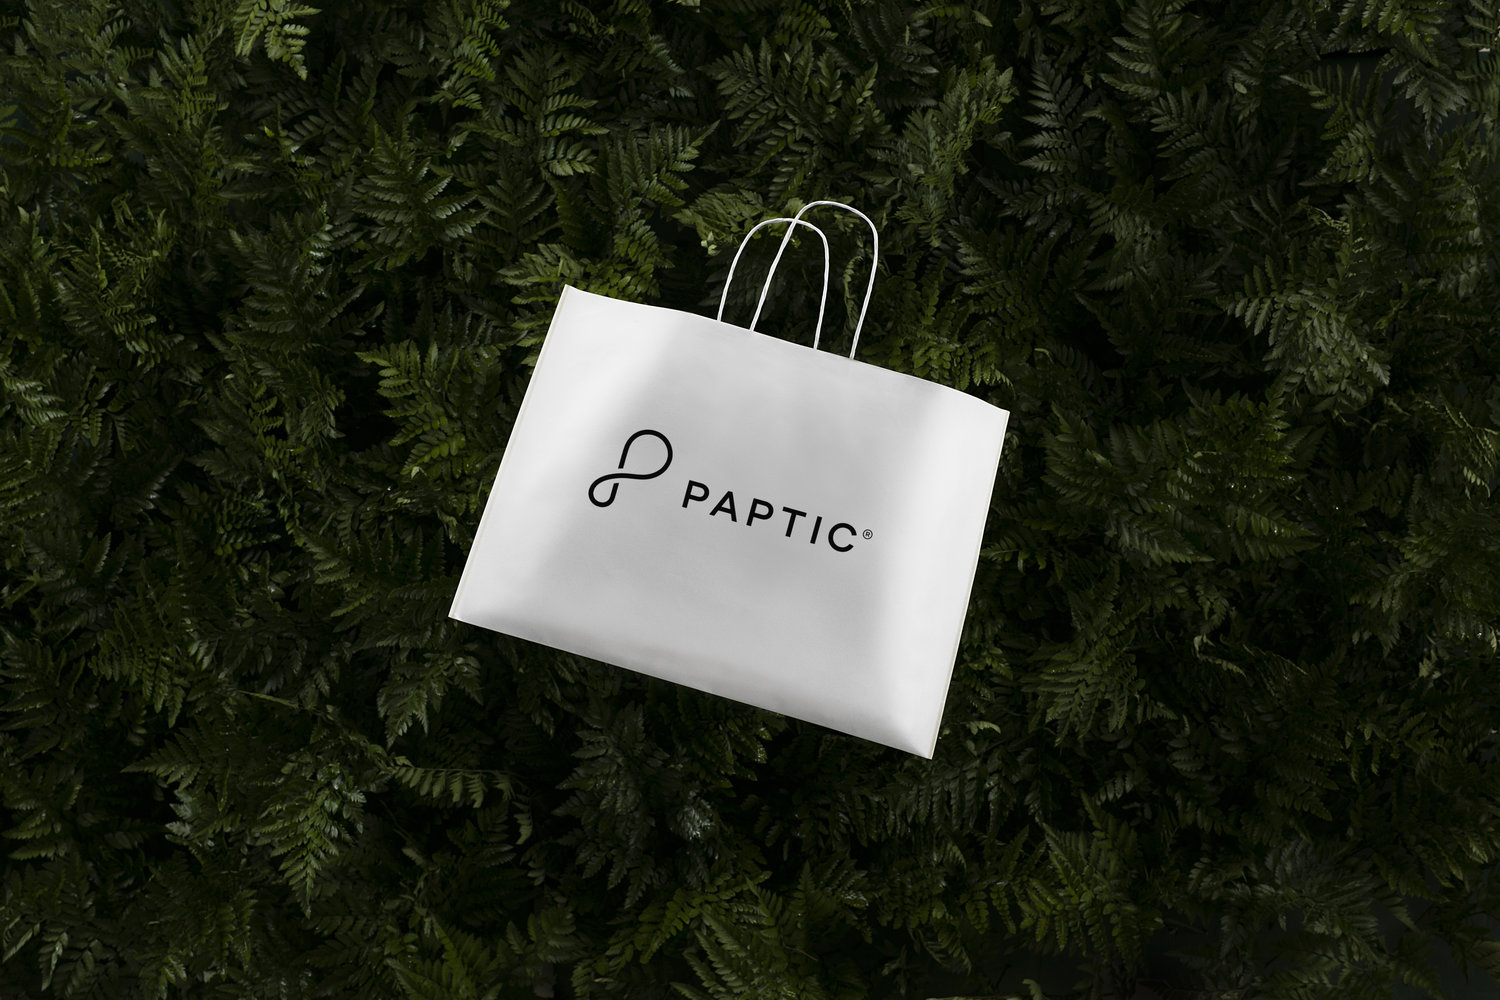 innovative fashion retail packaging - Paptic